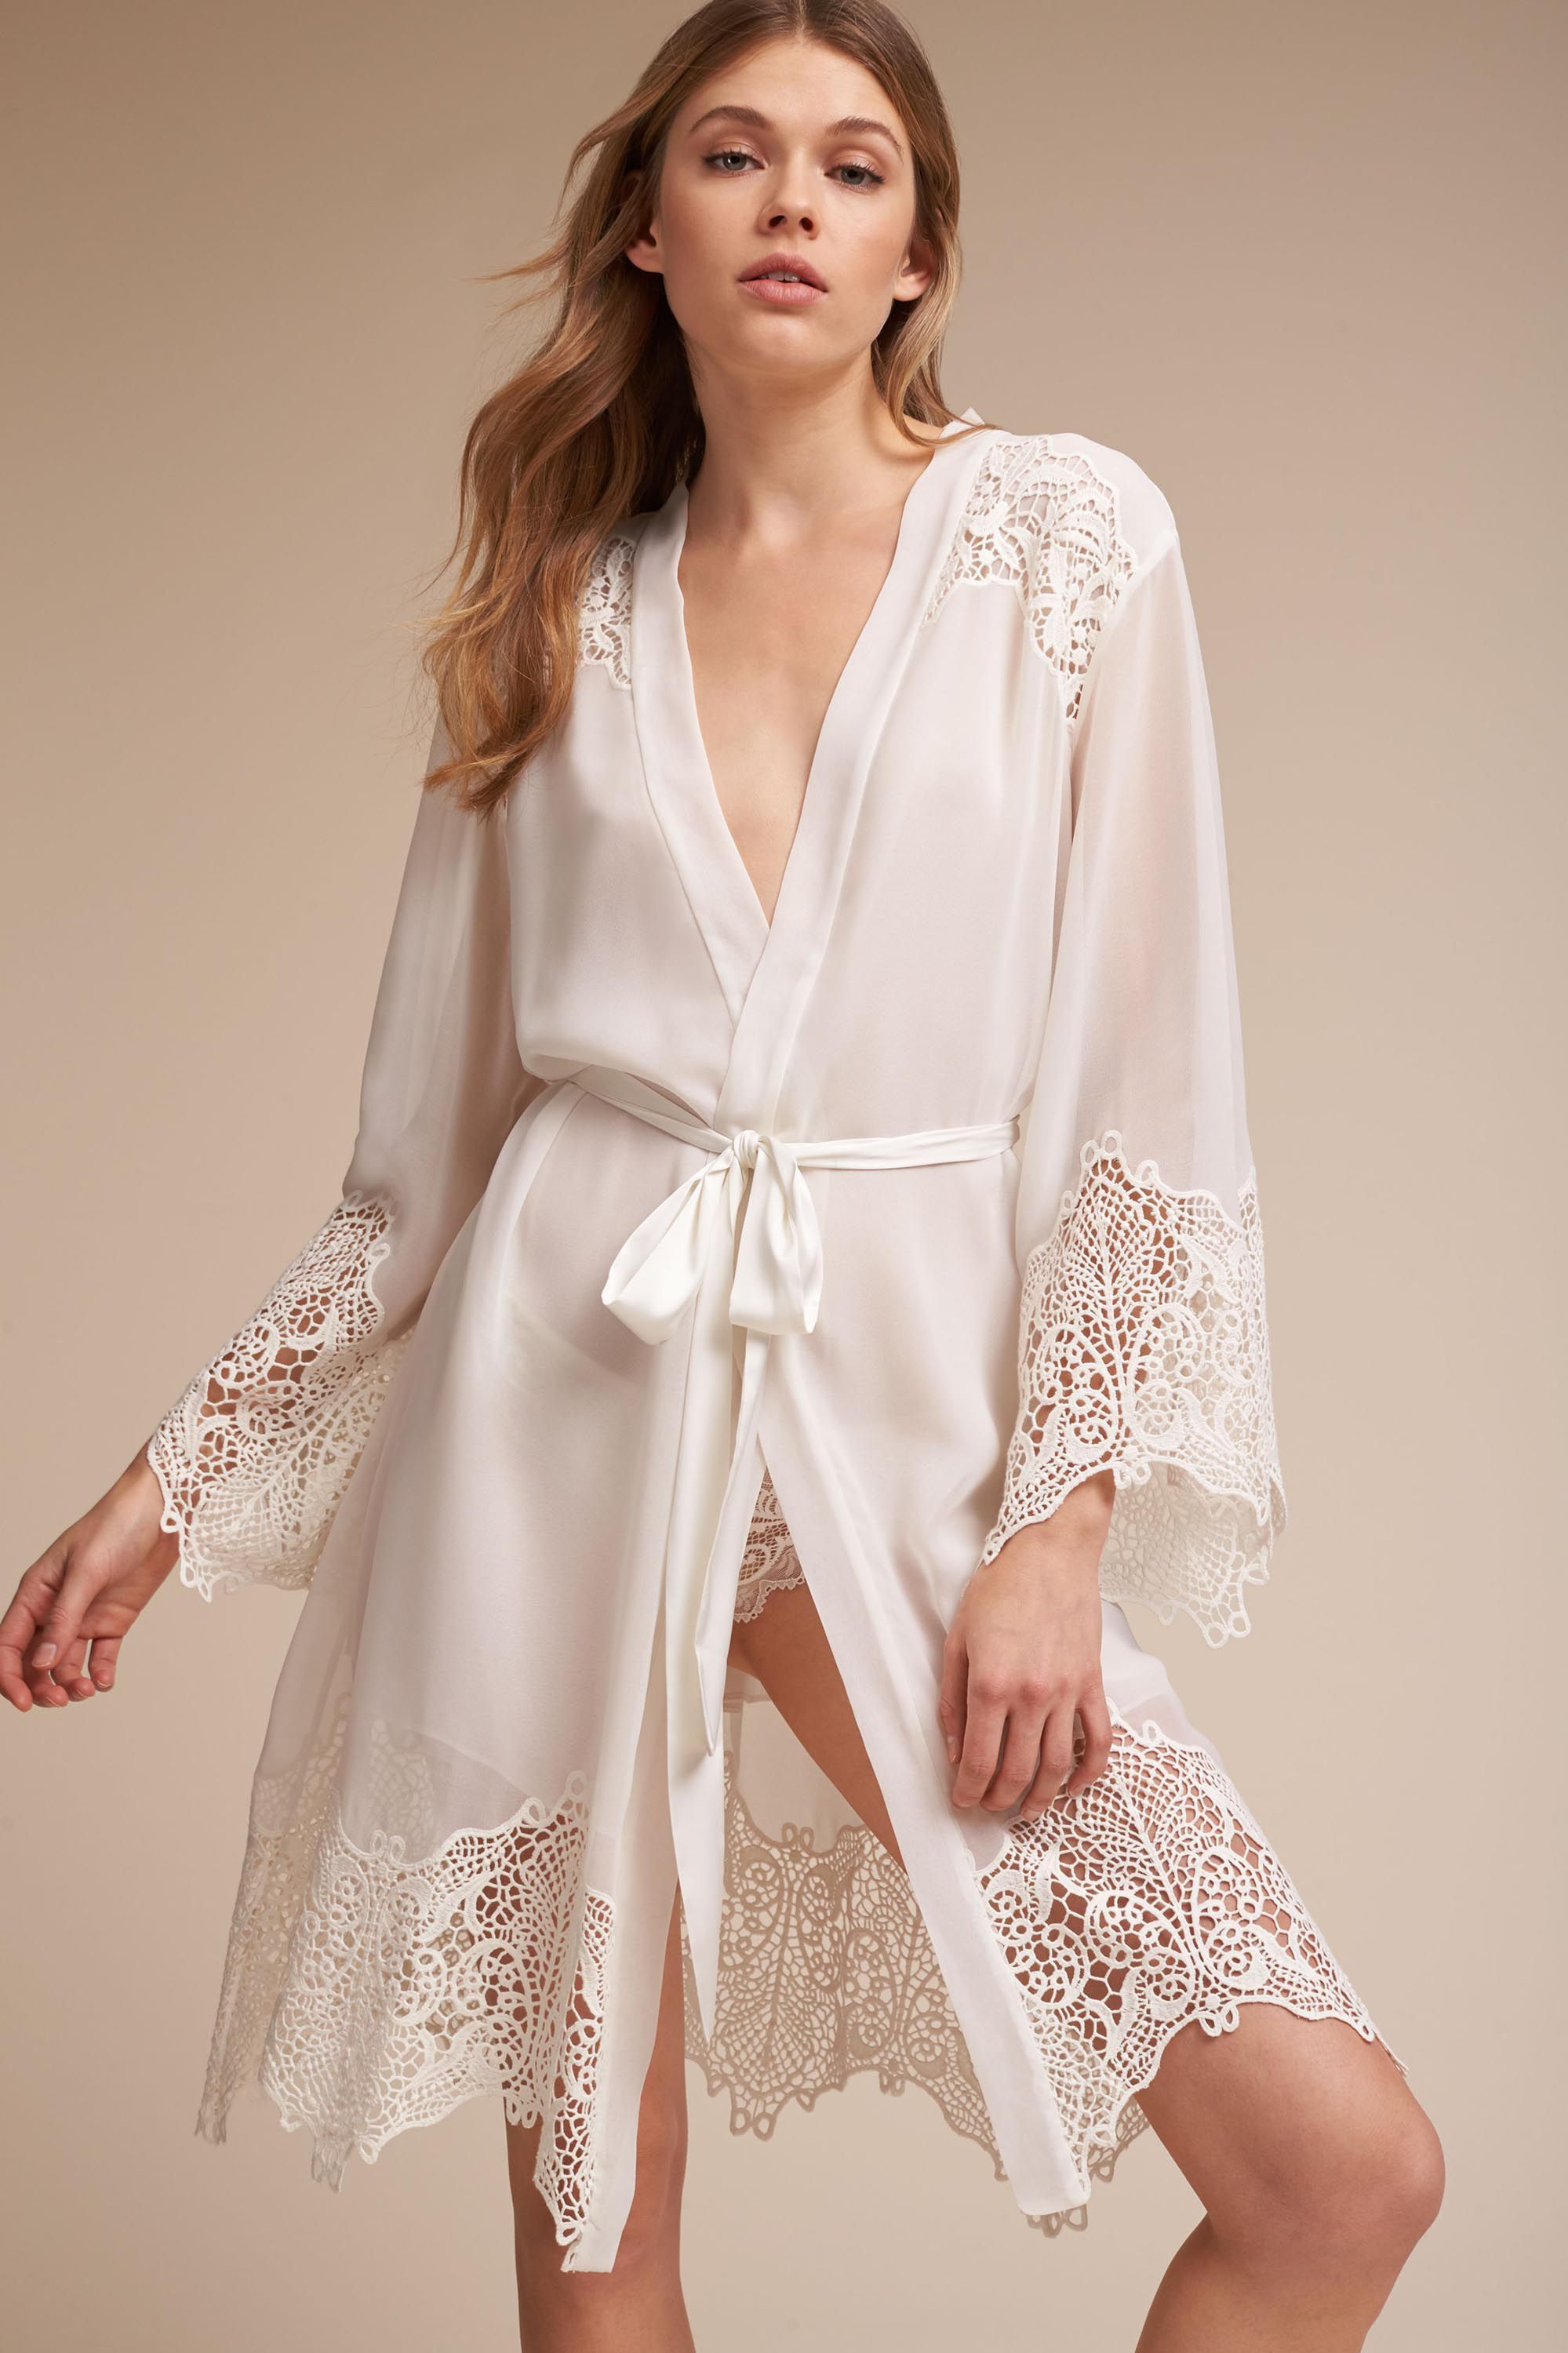 Wedding Bride Robe vilmena robe in bride bhldn ivory bhldn